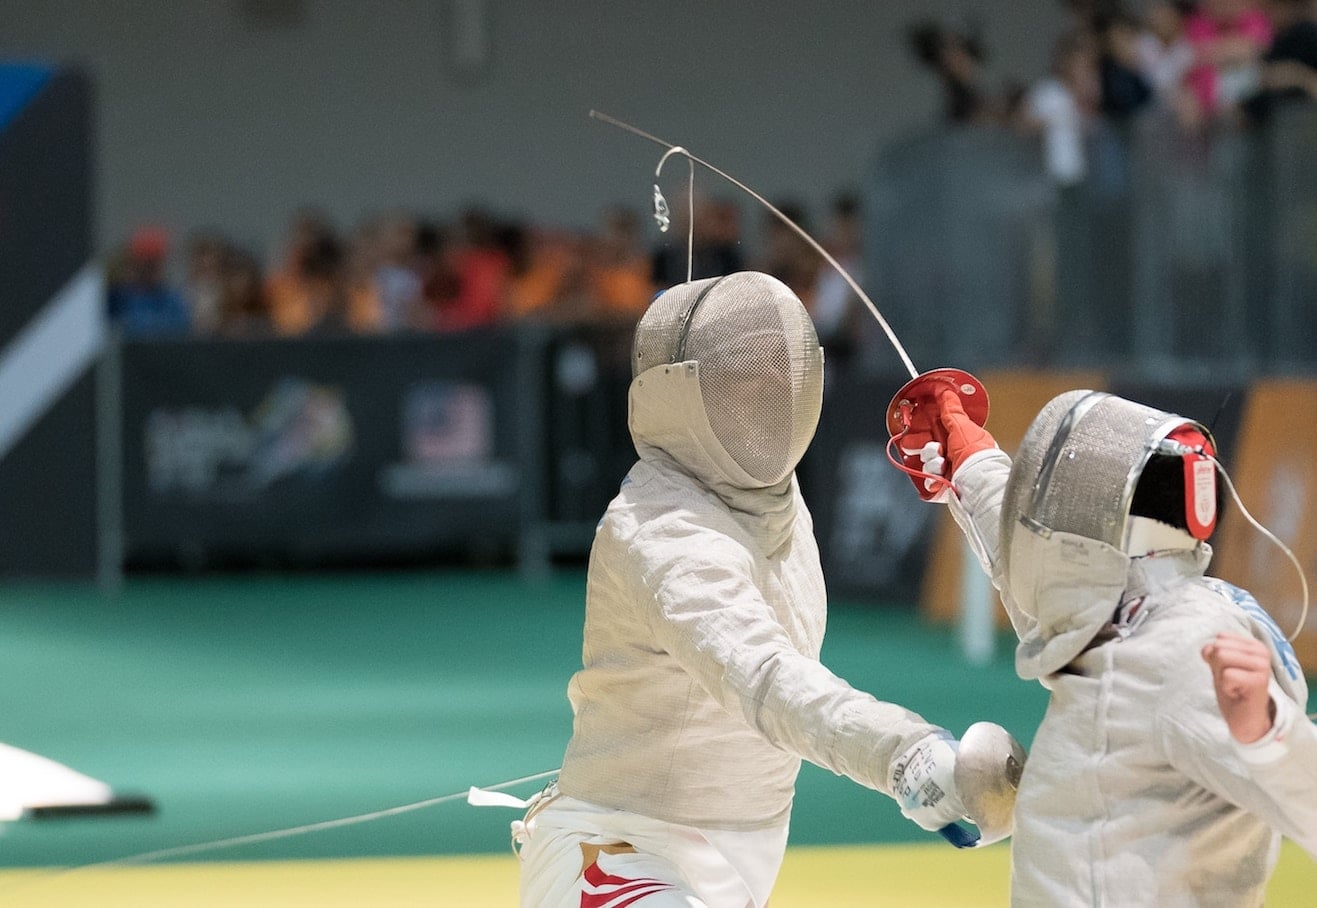 Two children fencing